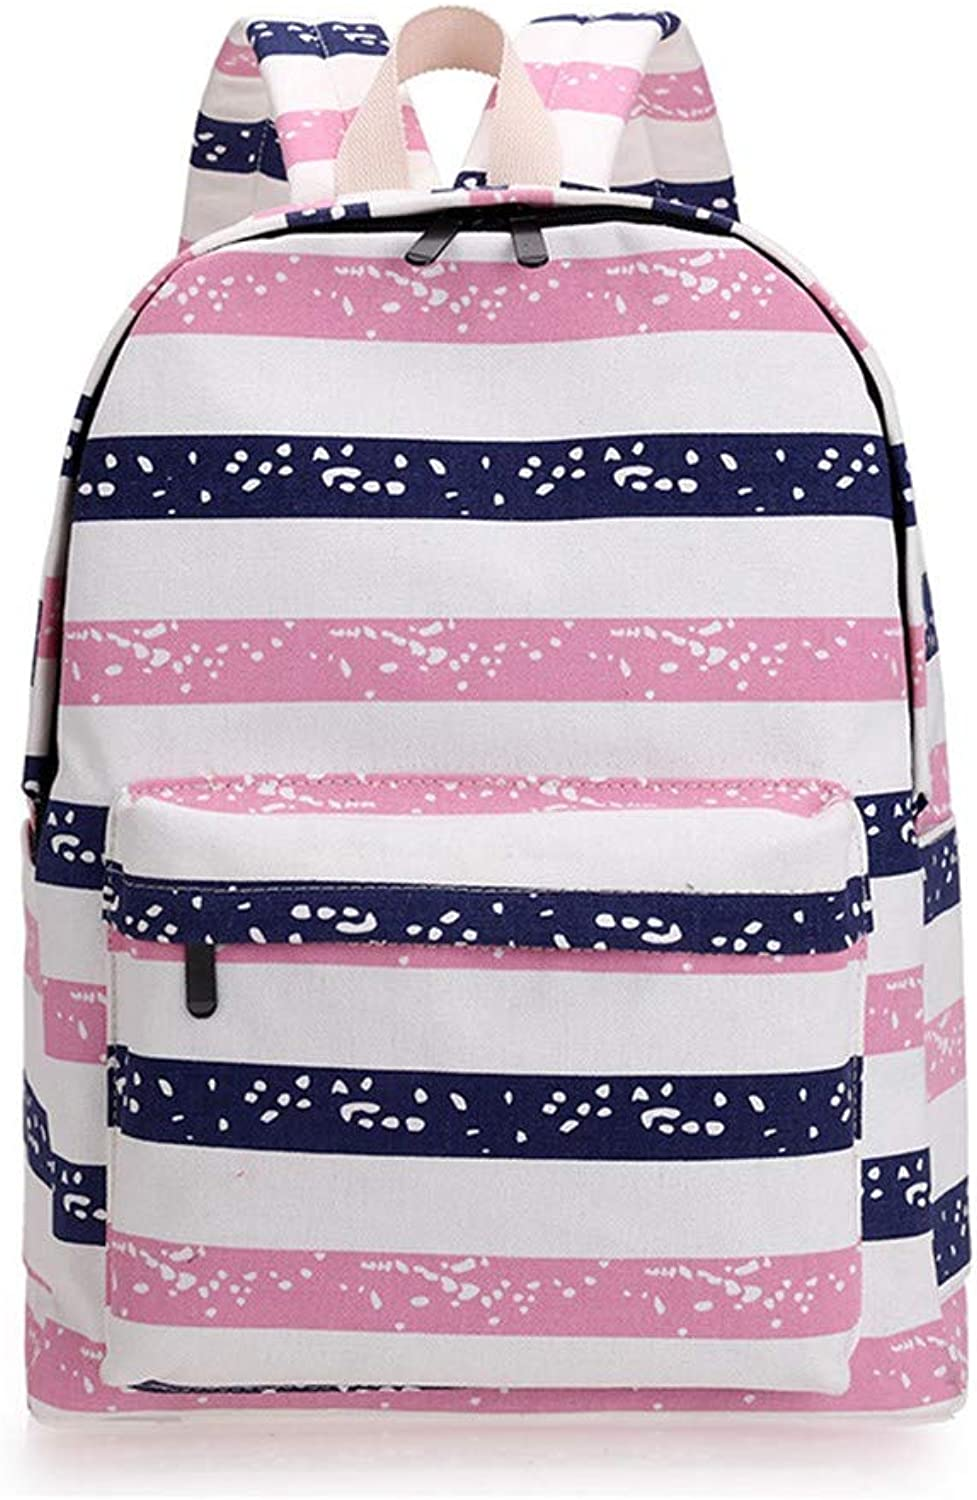 AUULANG Backpack Thick Striped Canvas Backpack Ladies Backpack Outdoor Travel Bag, Pink